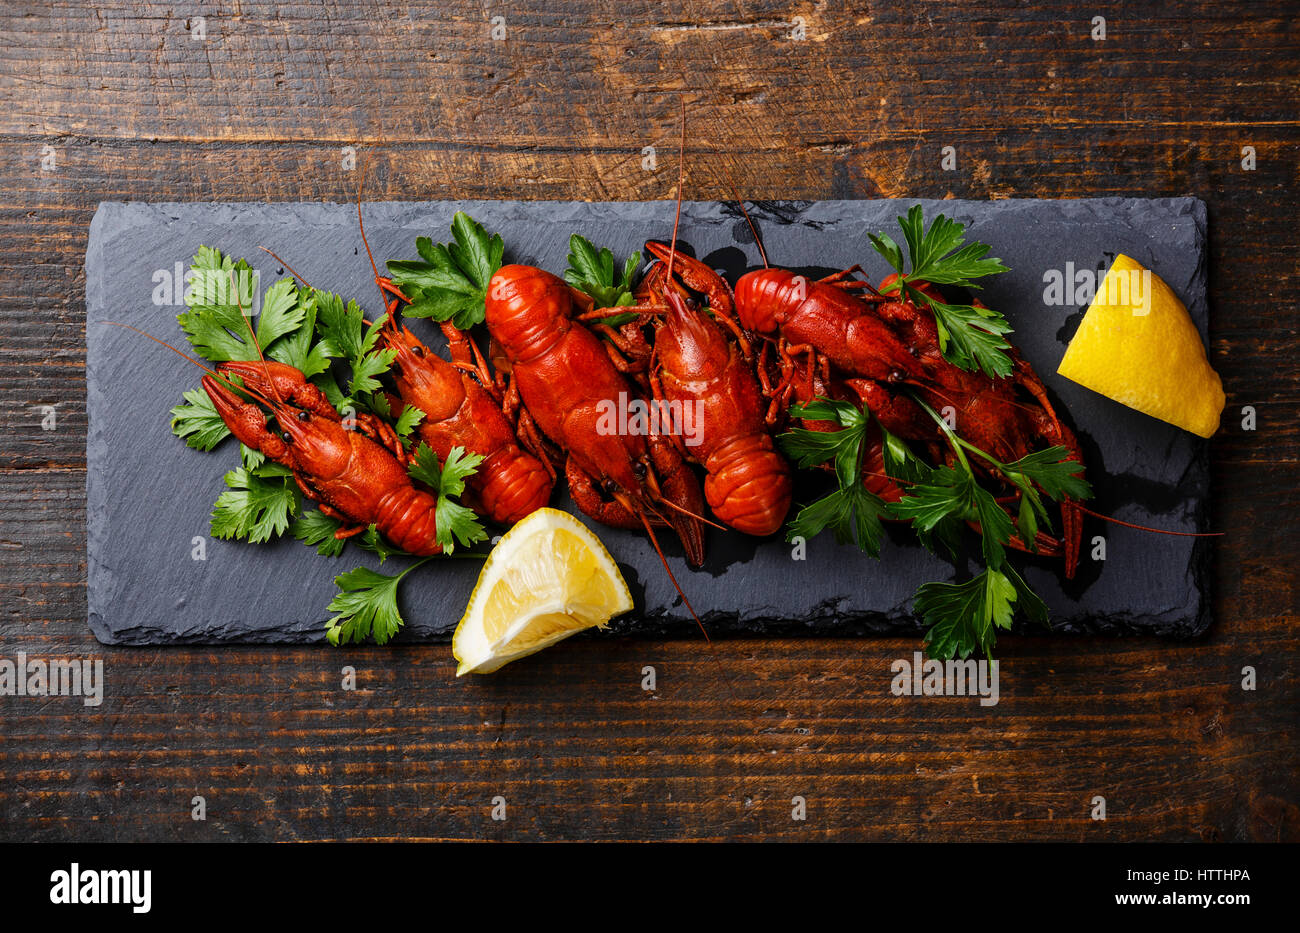 Red boiled crayfish with lemon serving size on stone slate on wooden background - Stock Image